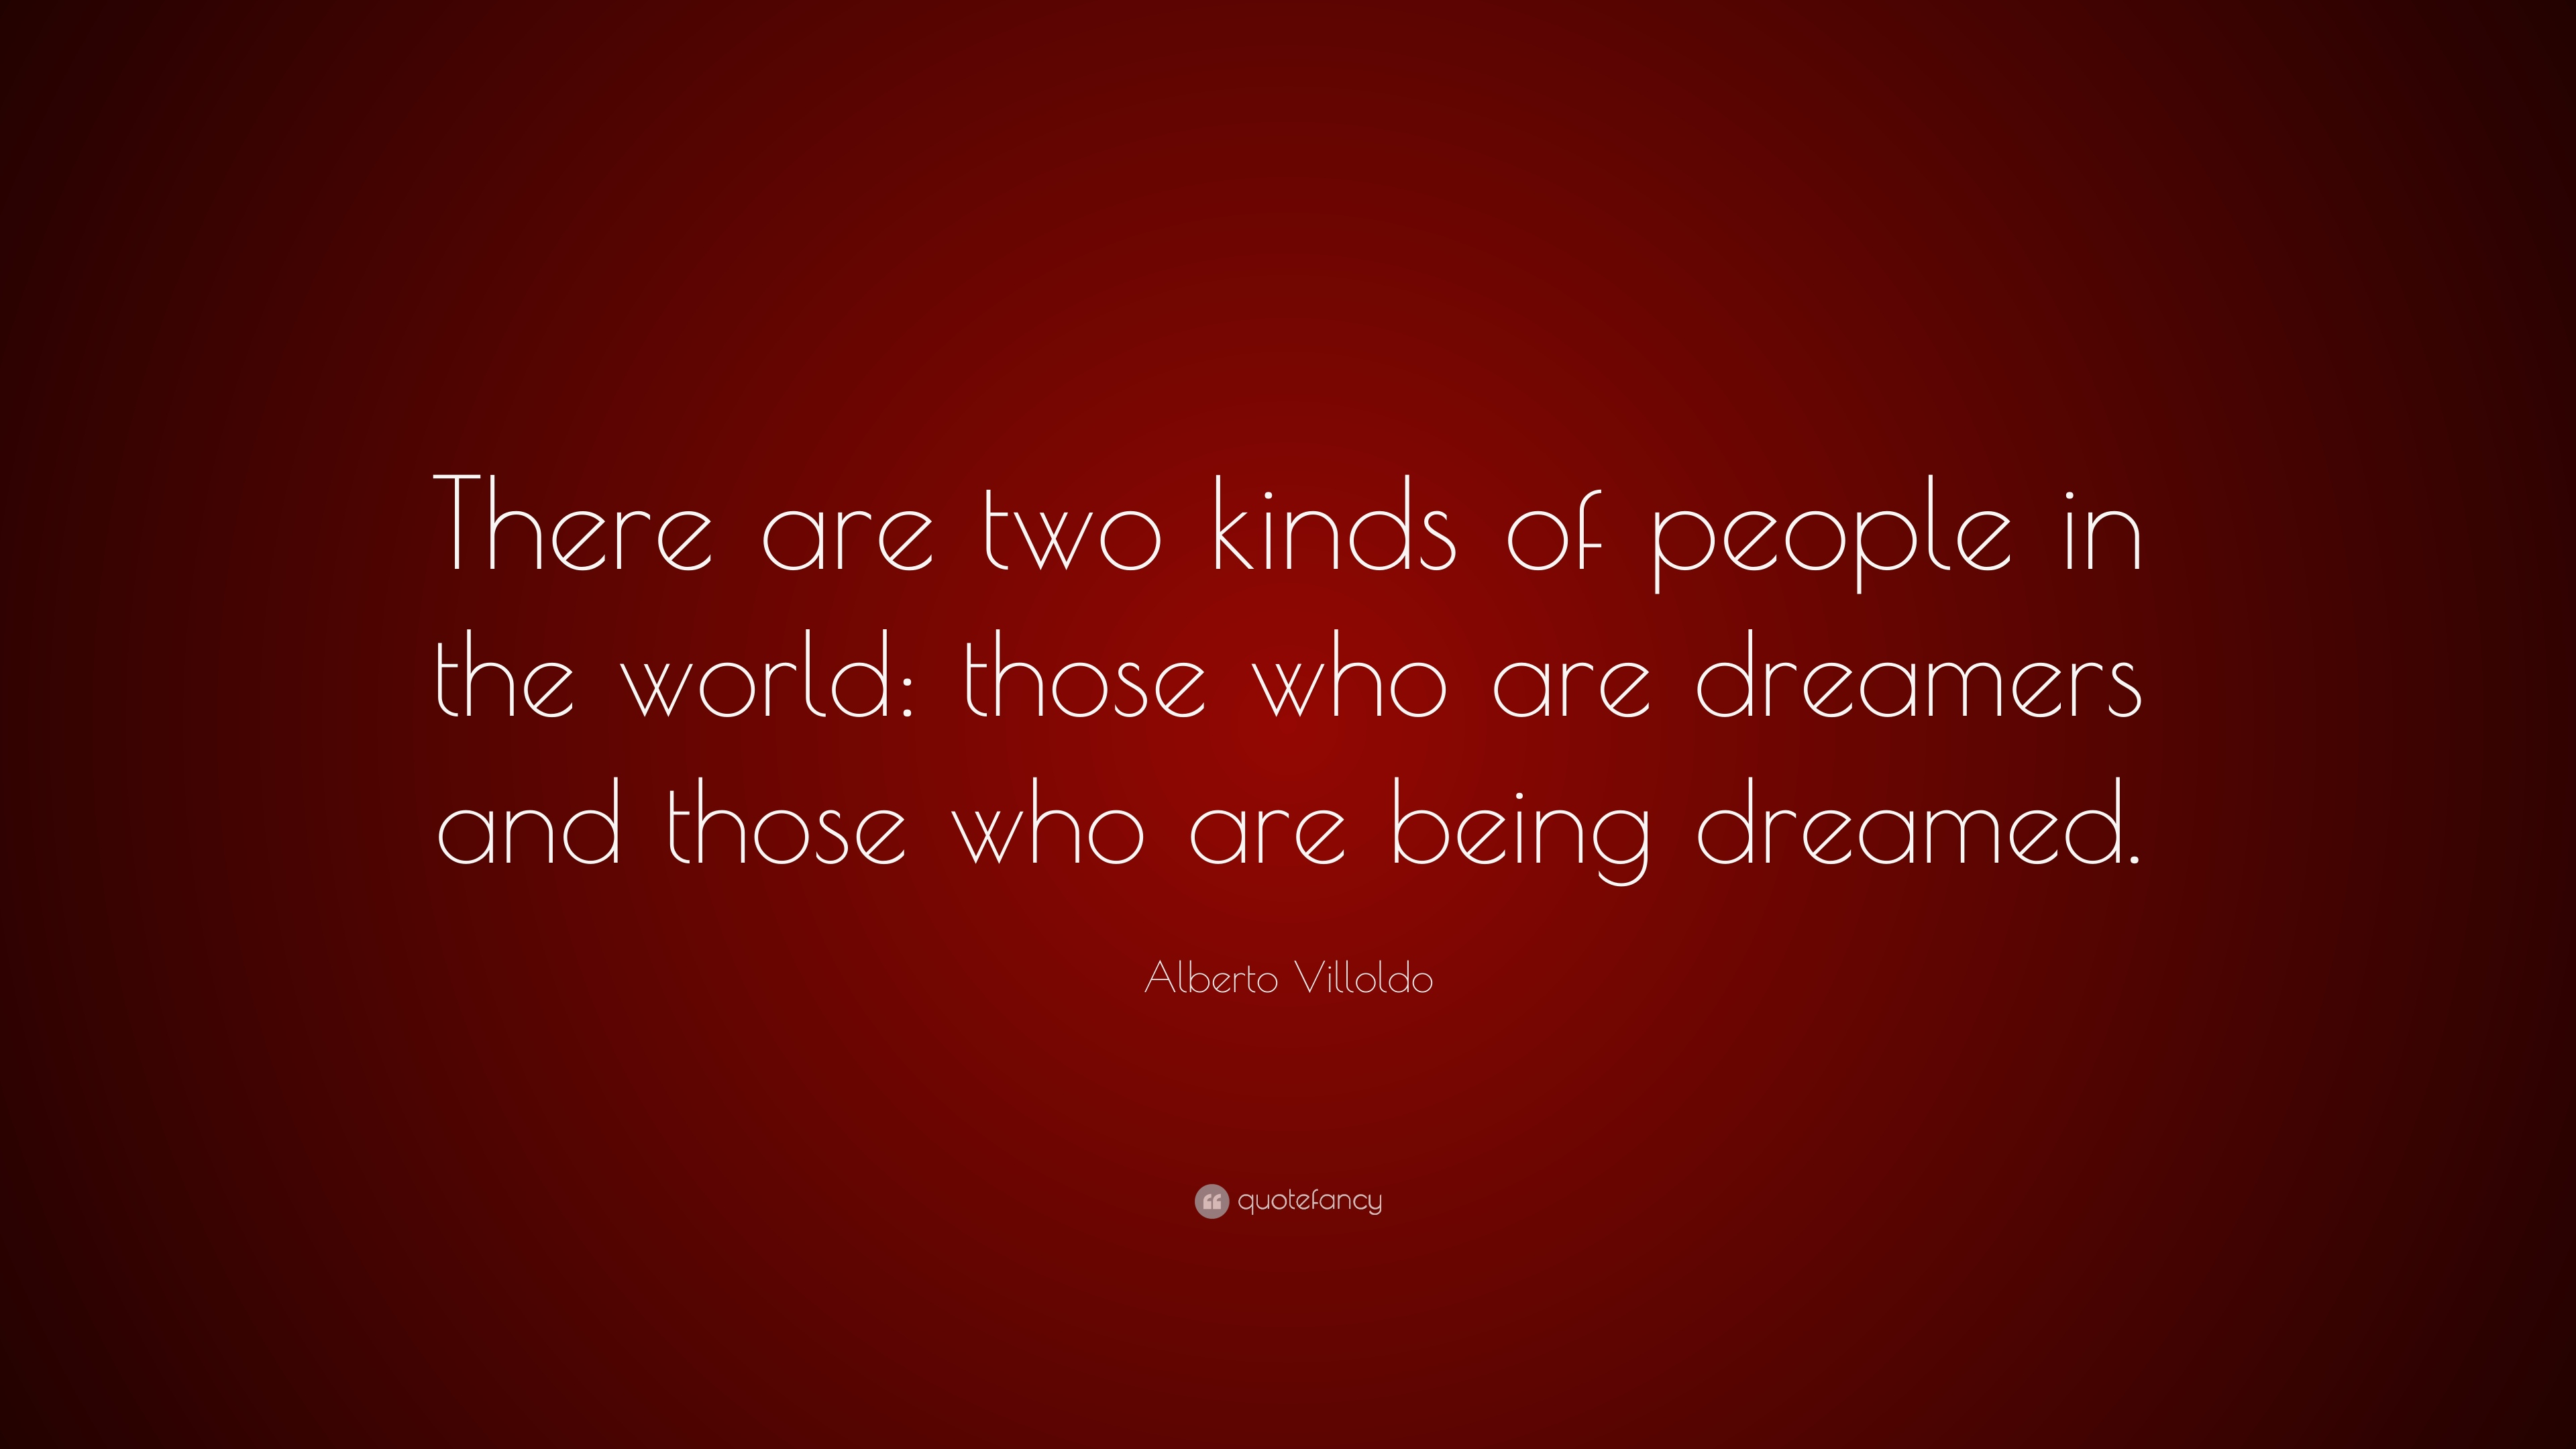 Alberto Villoldo Quote There Are Two Kinds Of People In The World